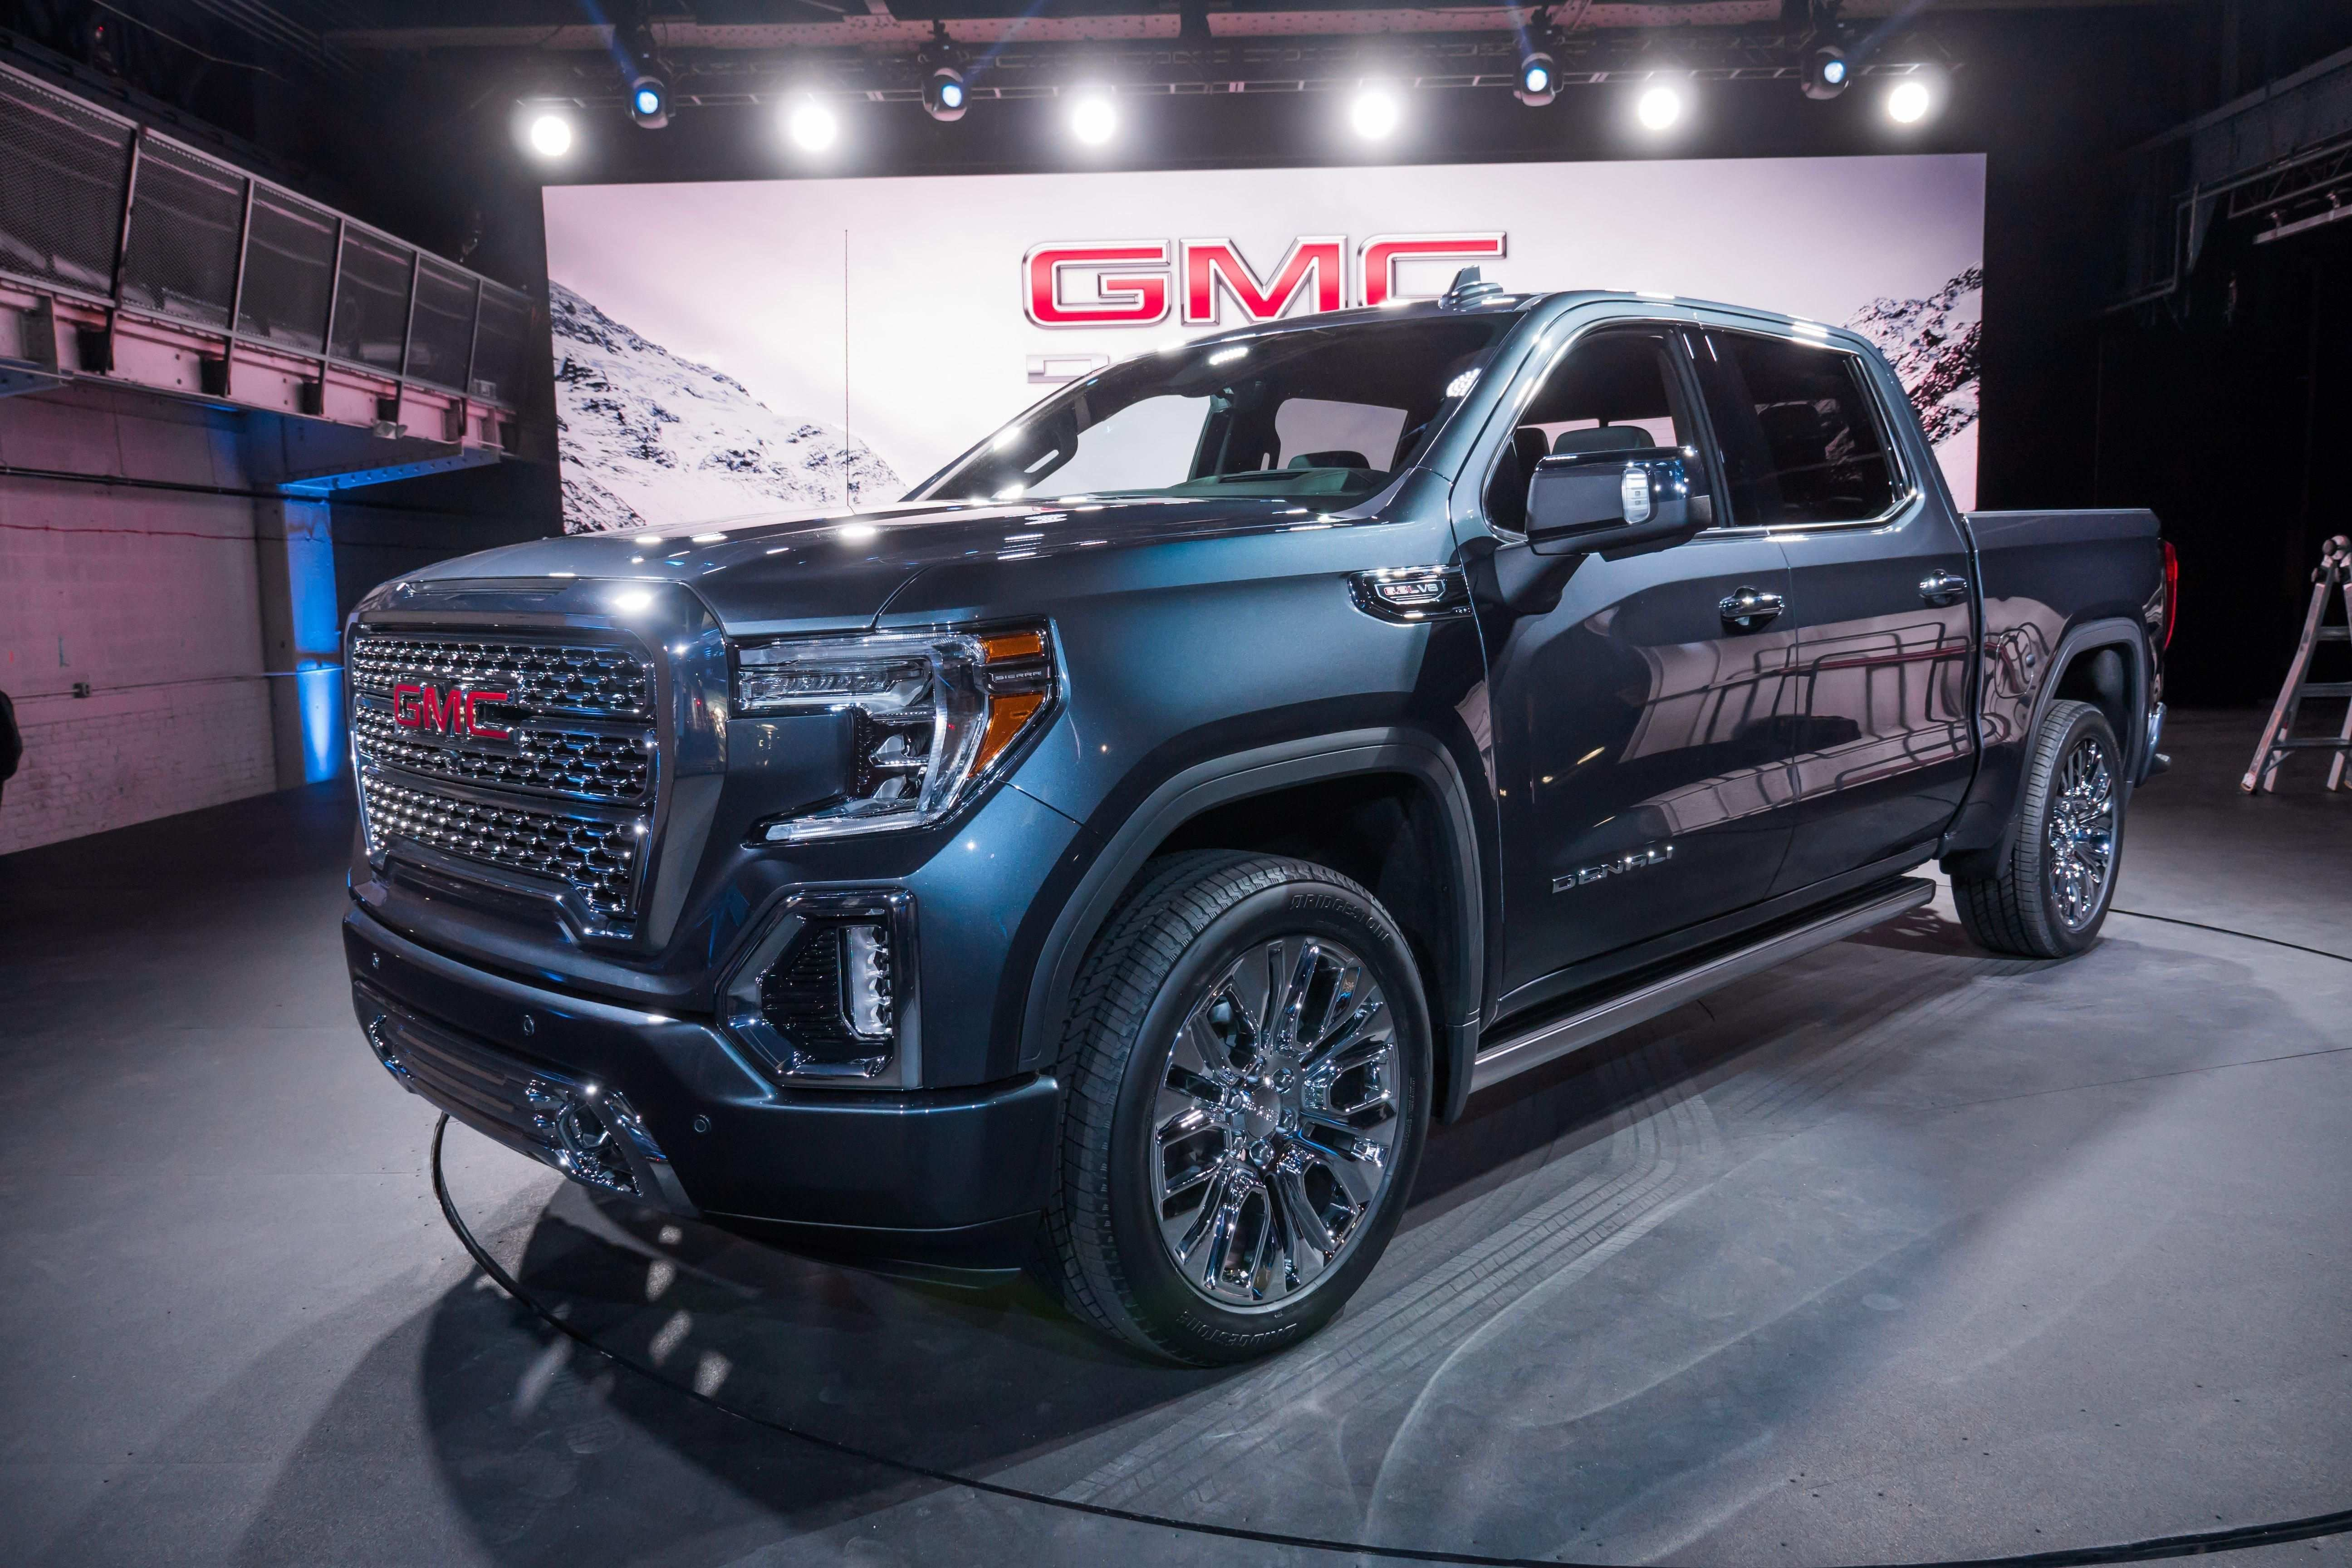 51 Best Review New Colors For 2019 Gmc Terrain Concept Redesign And Review Prices for New Colors For 2019 Gmc Terrain Concept Redesign And Review